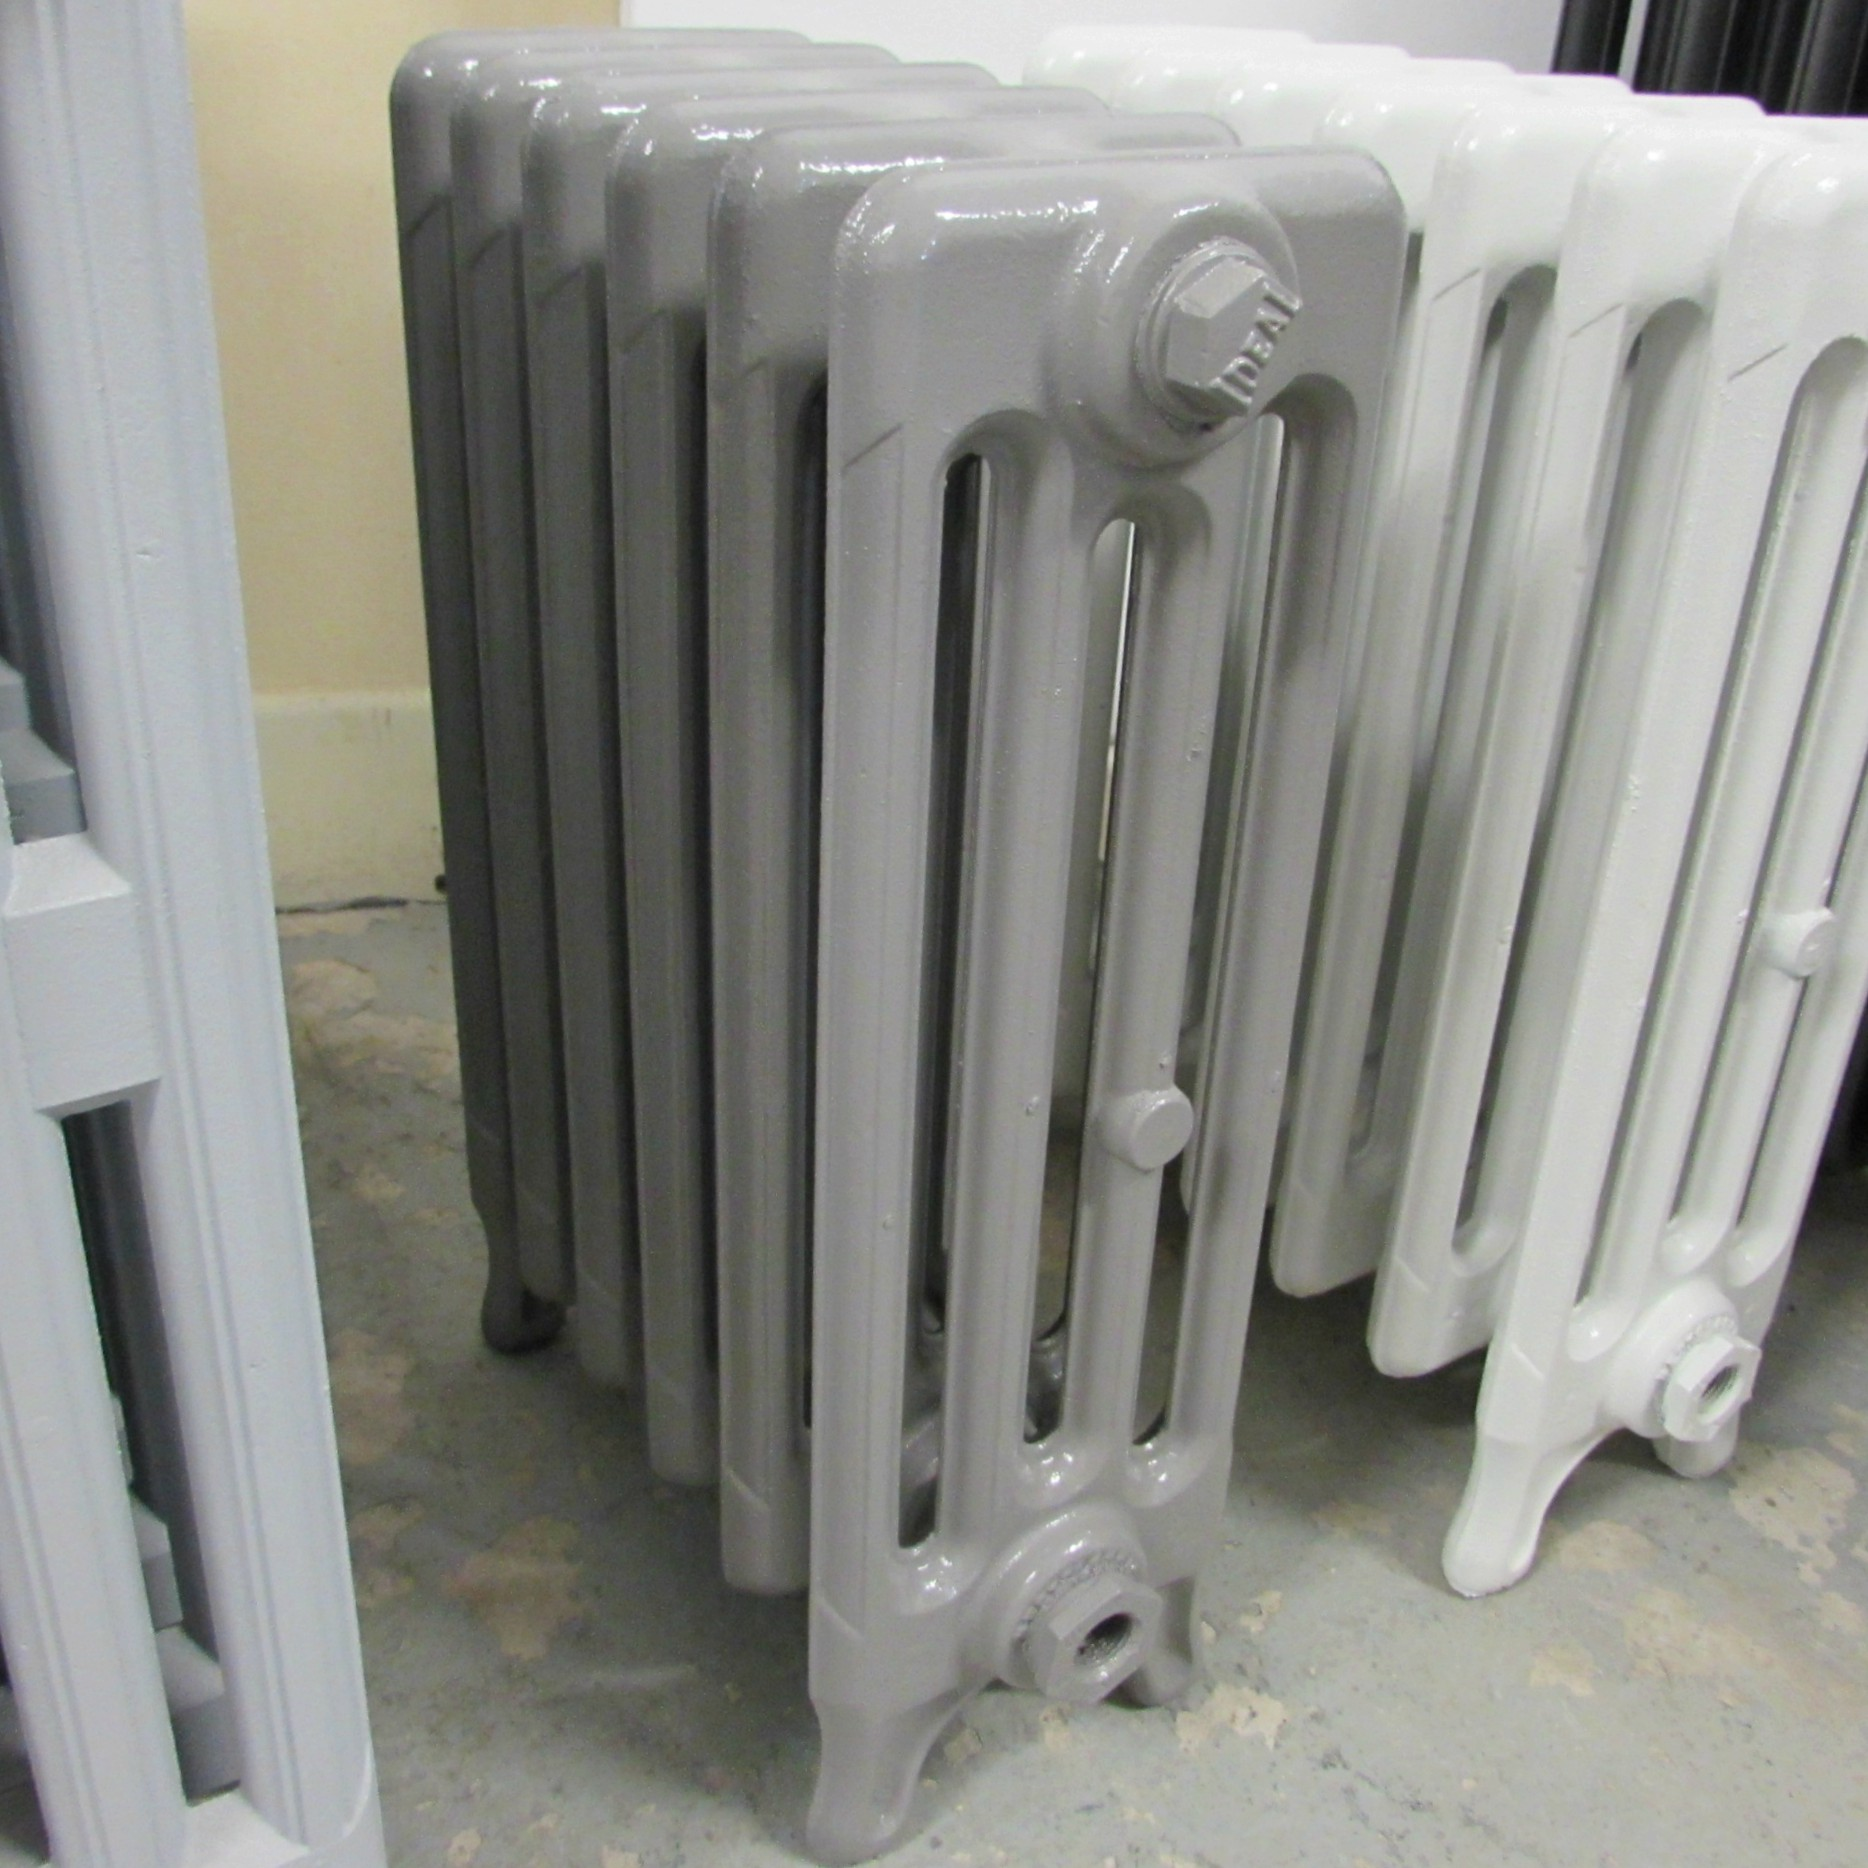 Reclaimed 4 column grey radiator